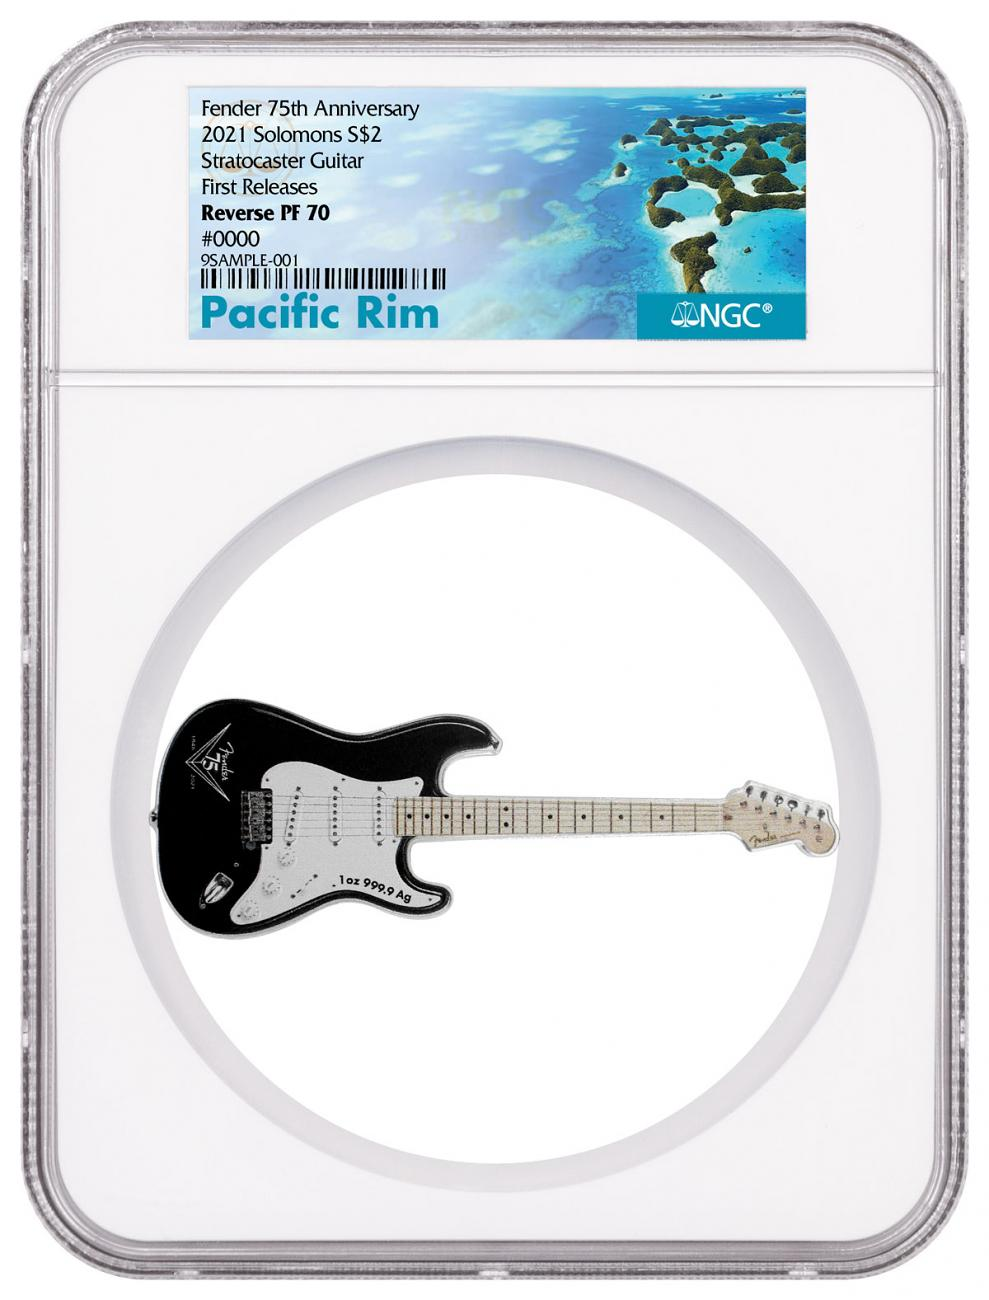 2021 Solomon Islands Fender - 75th Anniversary - Stratocaster Guitar Shaped 1 oz Silver Colorized Reverse Proof $2 Coin NGC PF70 FR Exclusive Pacific Rim Label